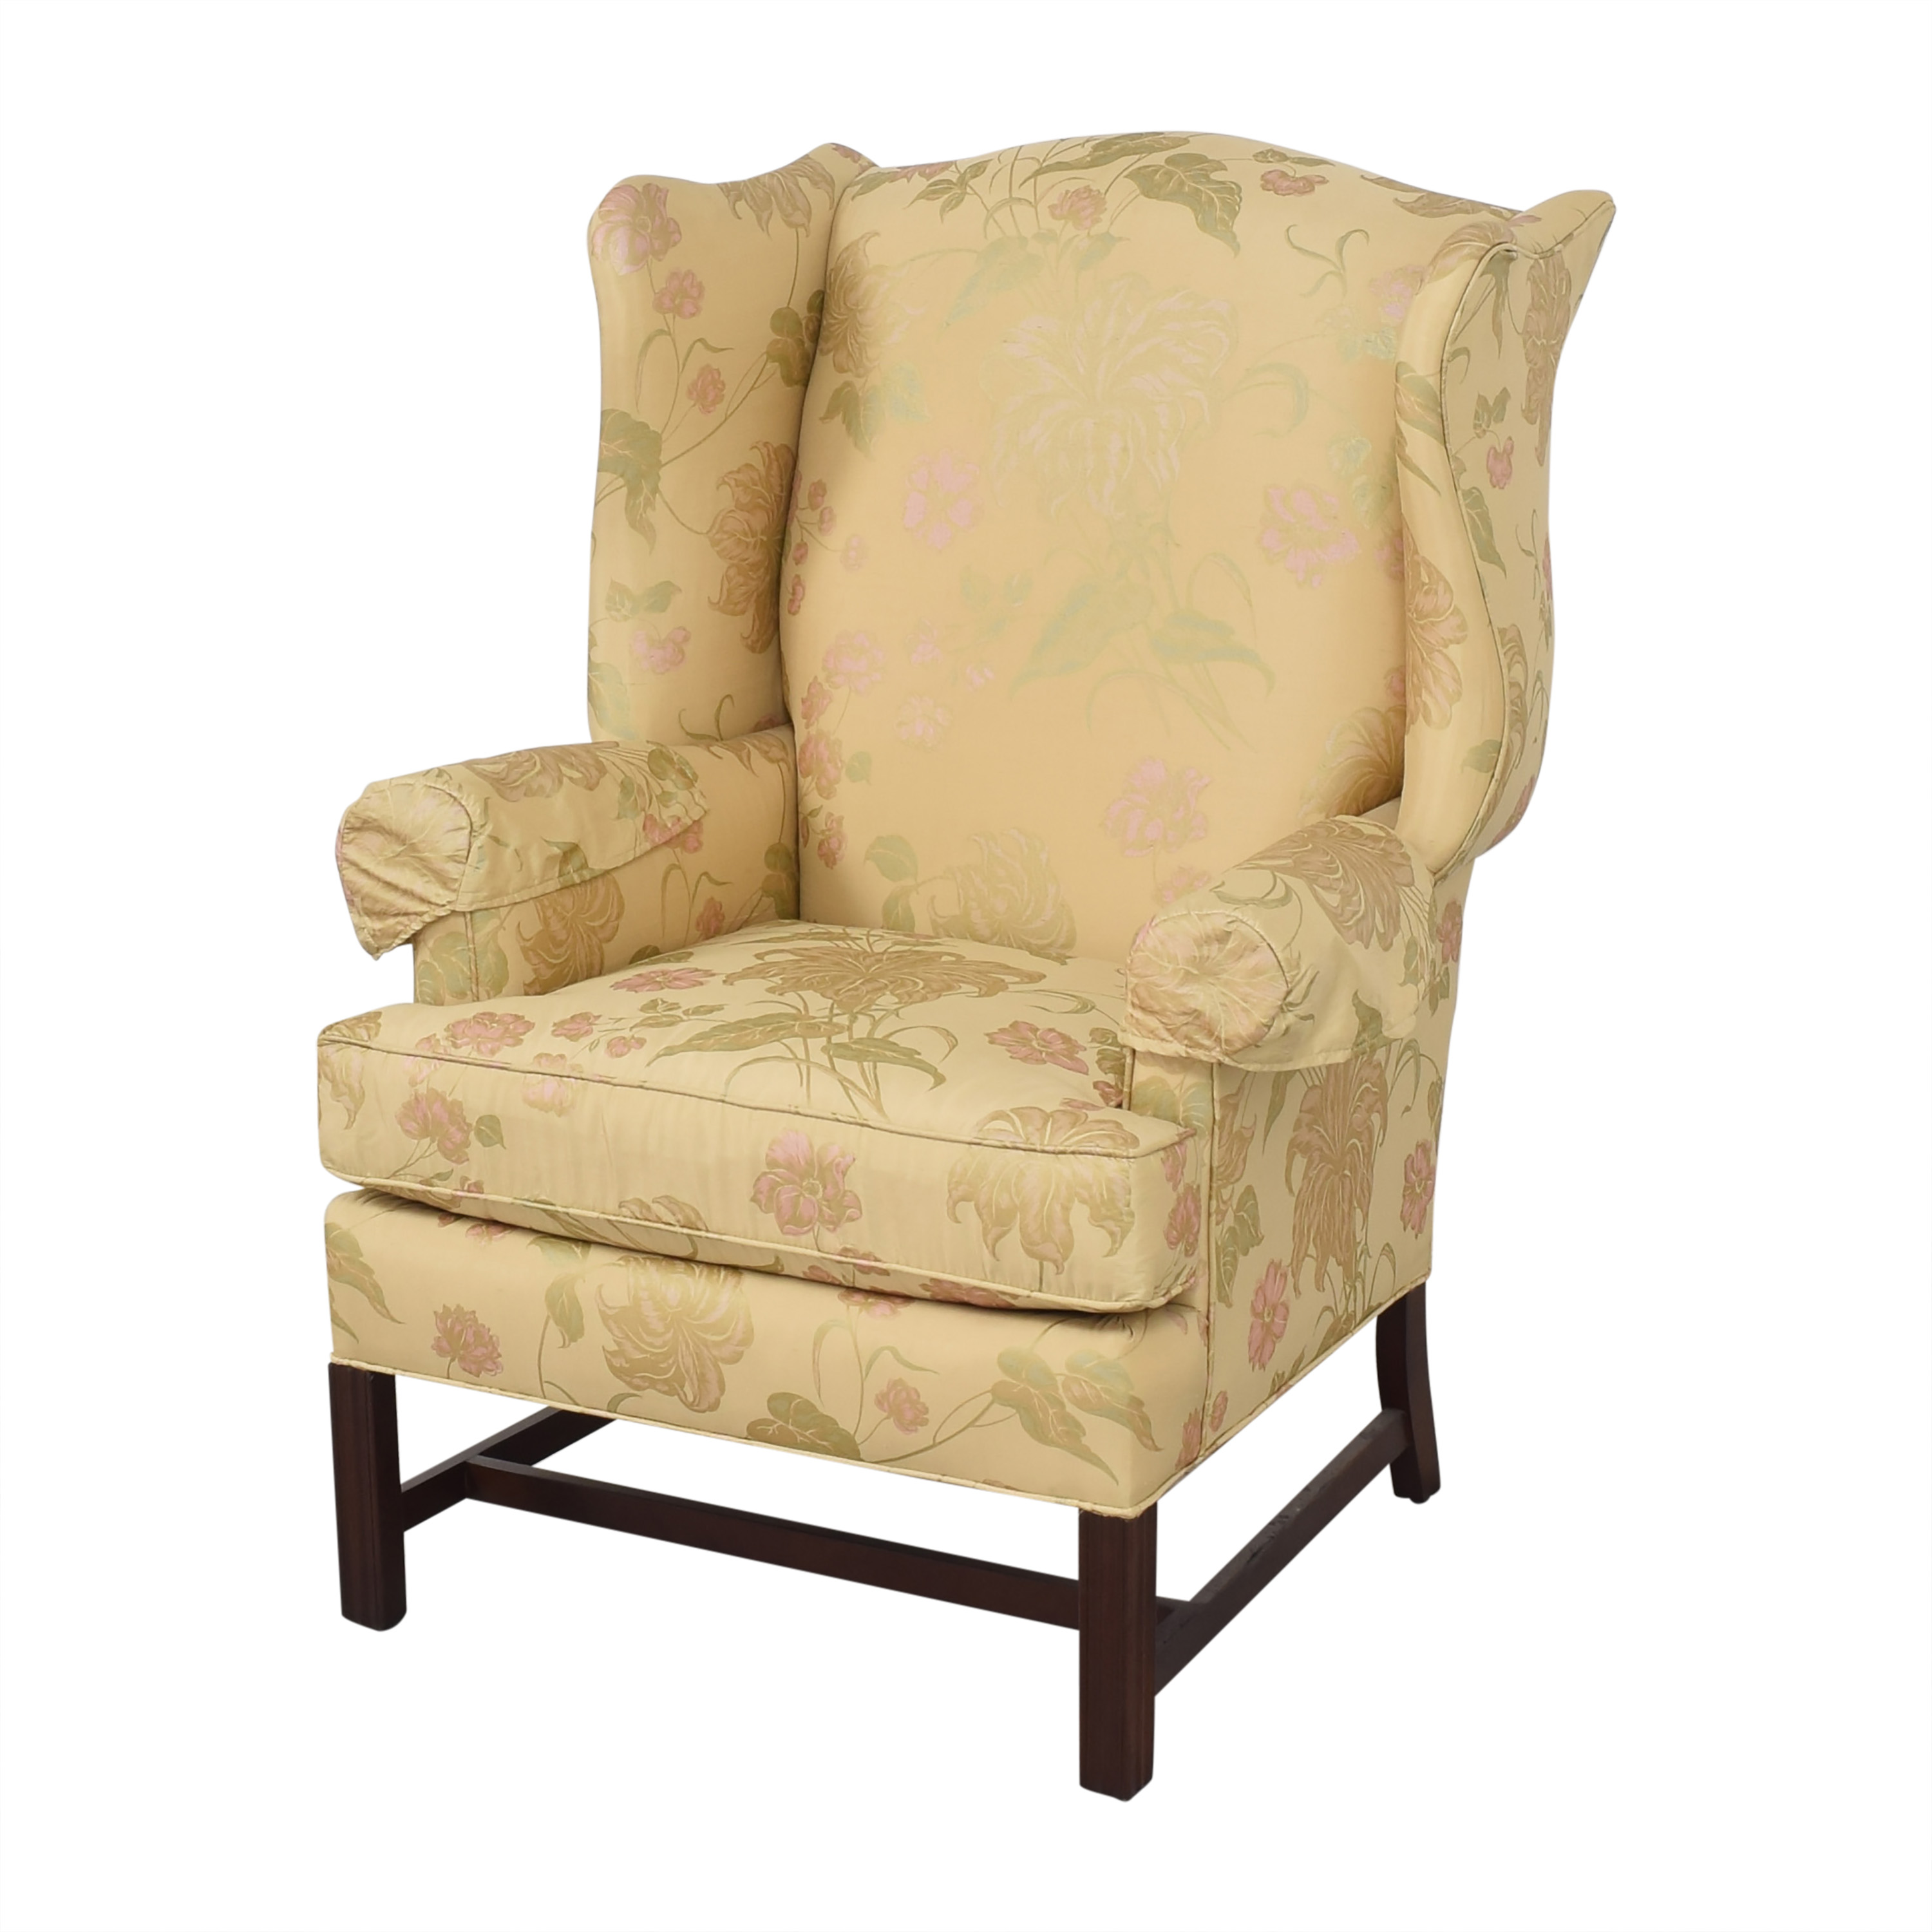 CR Laine Upholstered Accent Chair sale